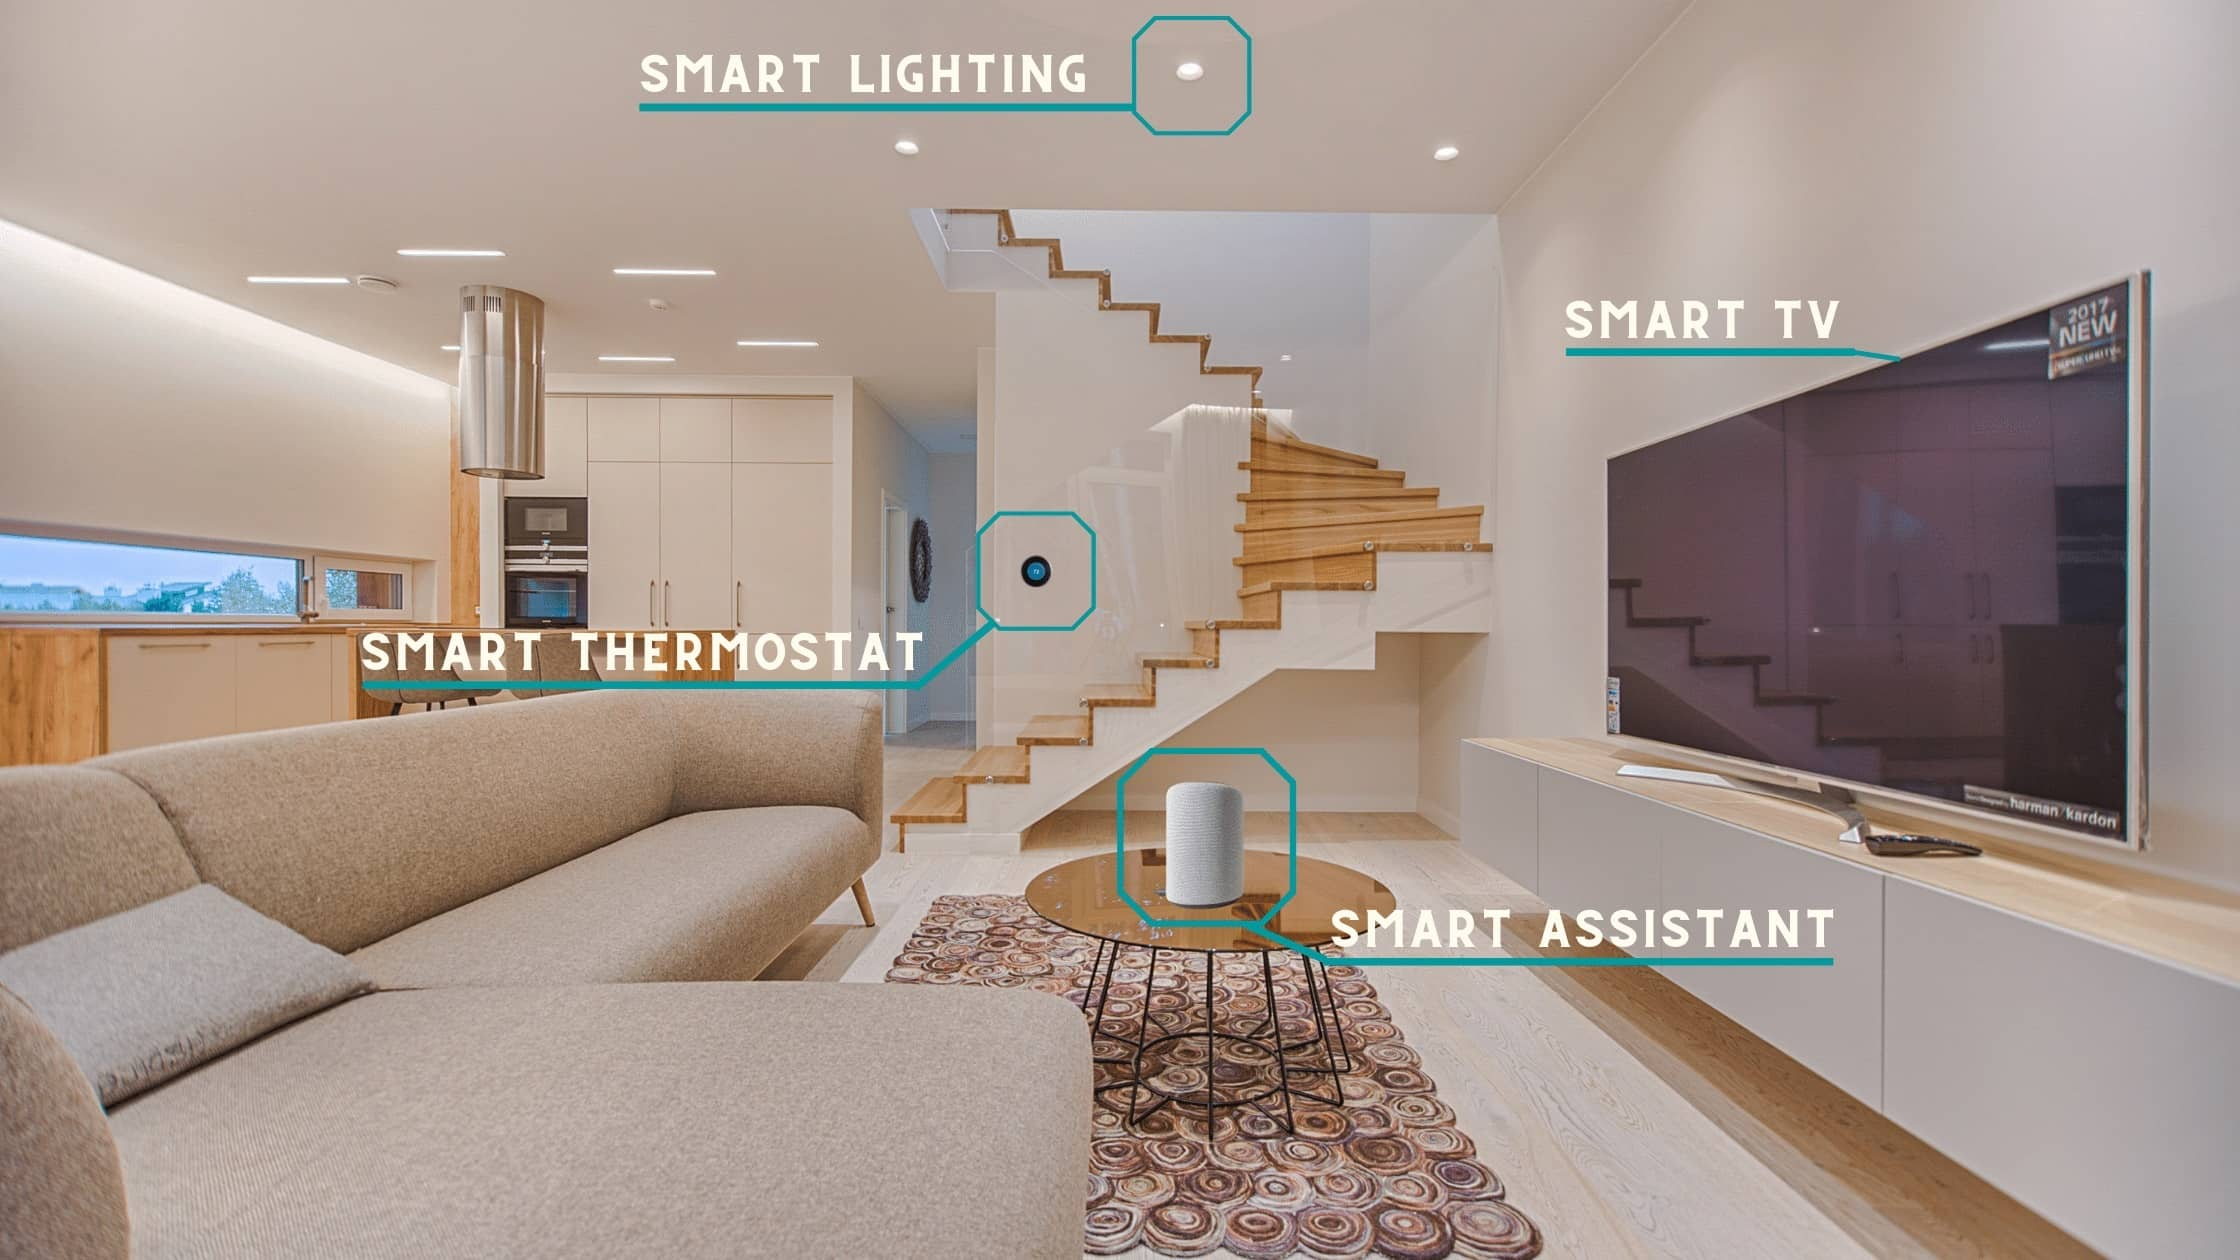 living room showing what smart devices can be installed